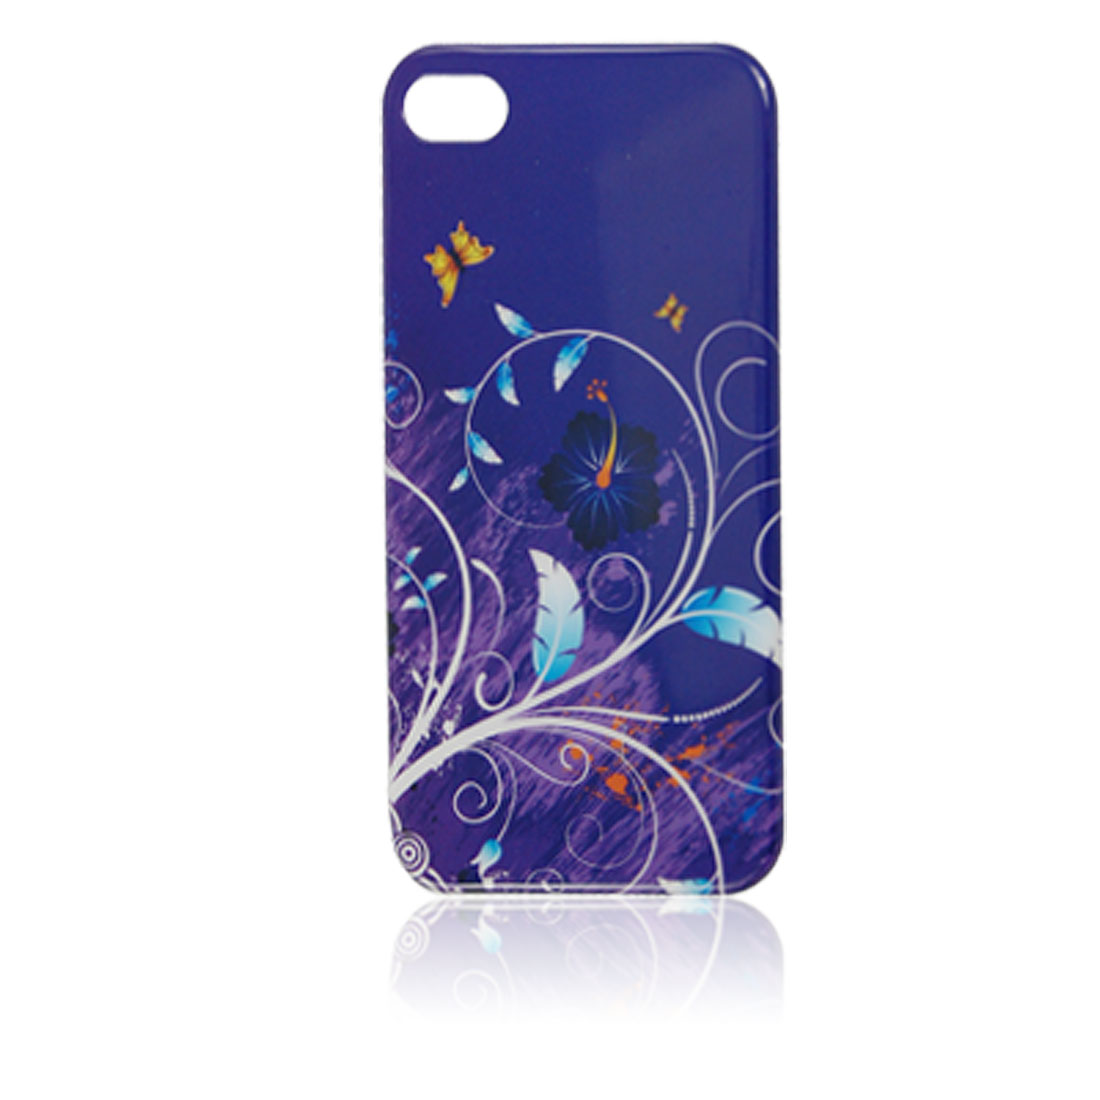 Floral Decor Navy Blue Plastic IMD Back Cover for iPhone 4 4G